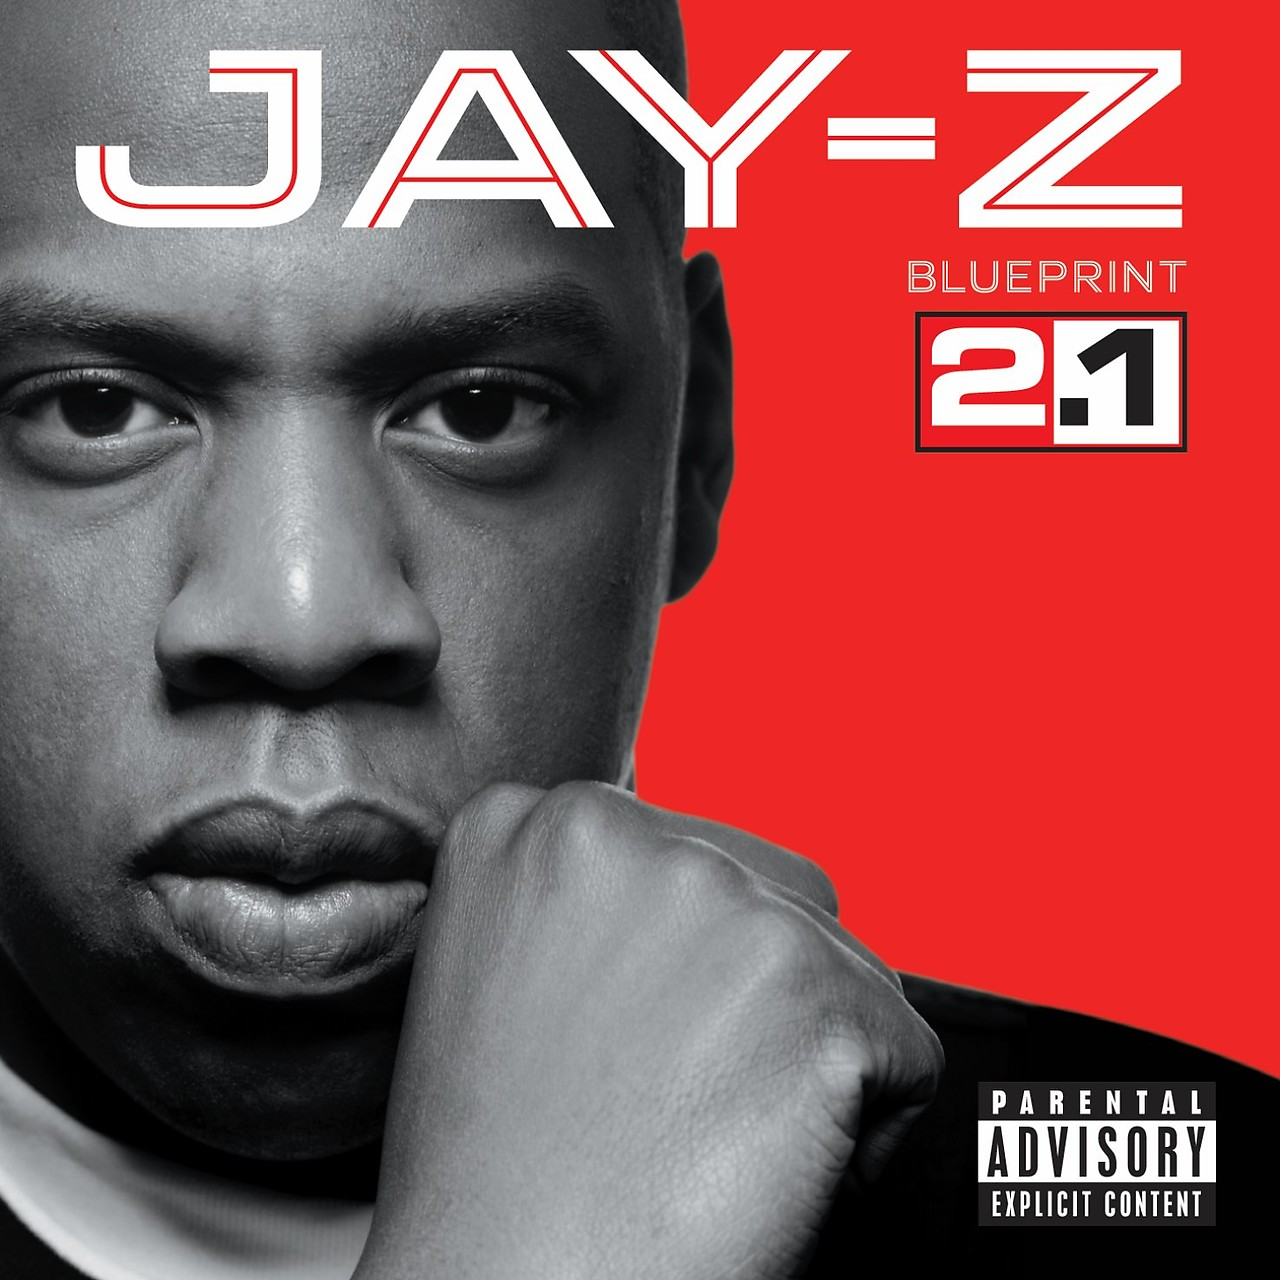 Blueprint 21 by jay z arena music malvernweather Images